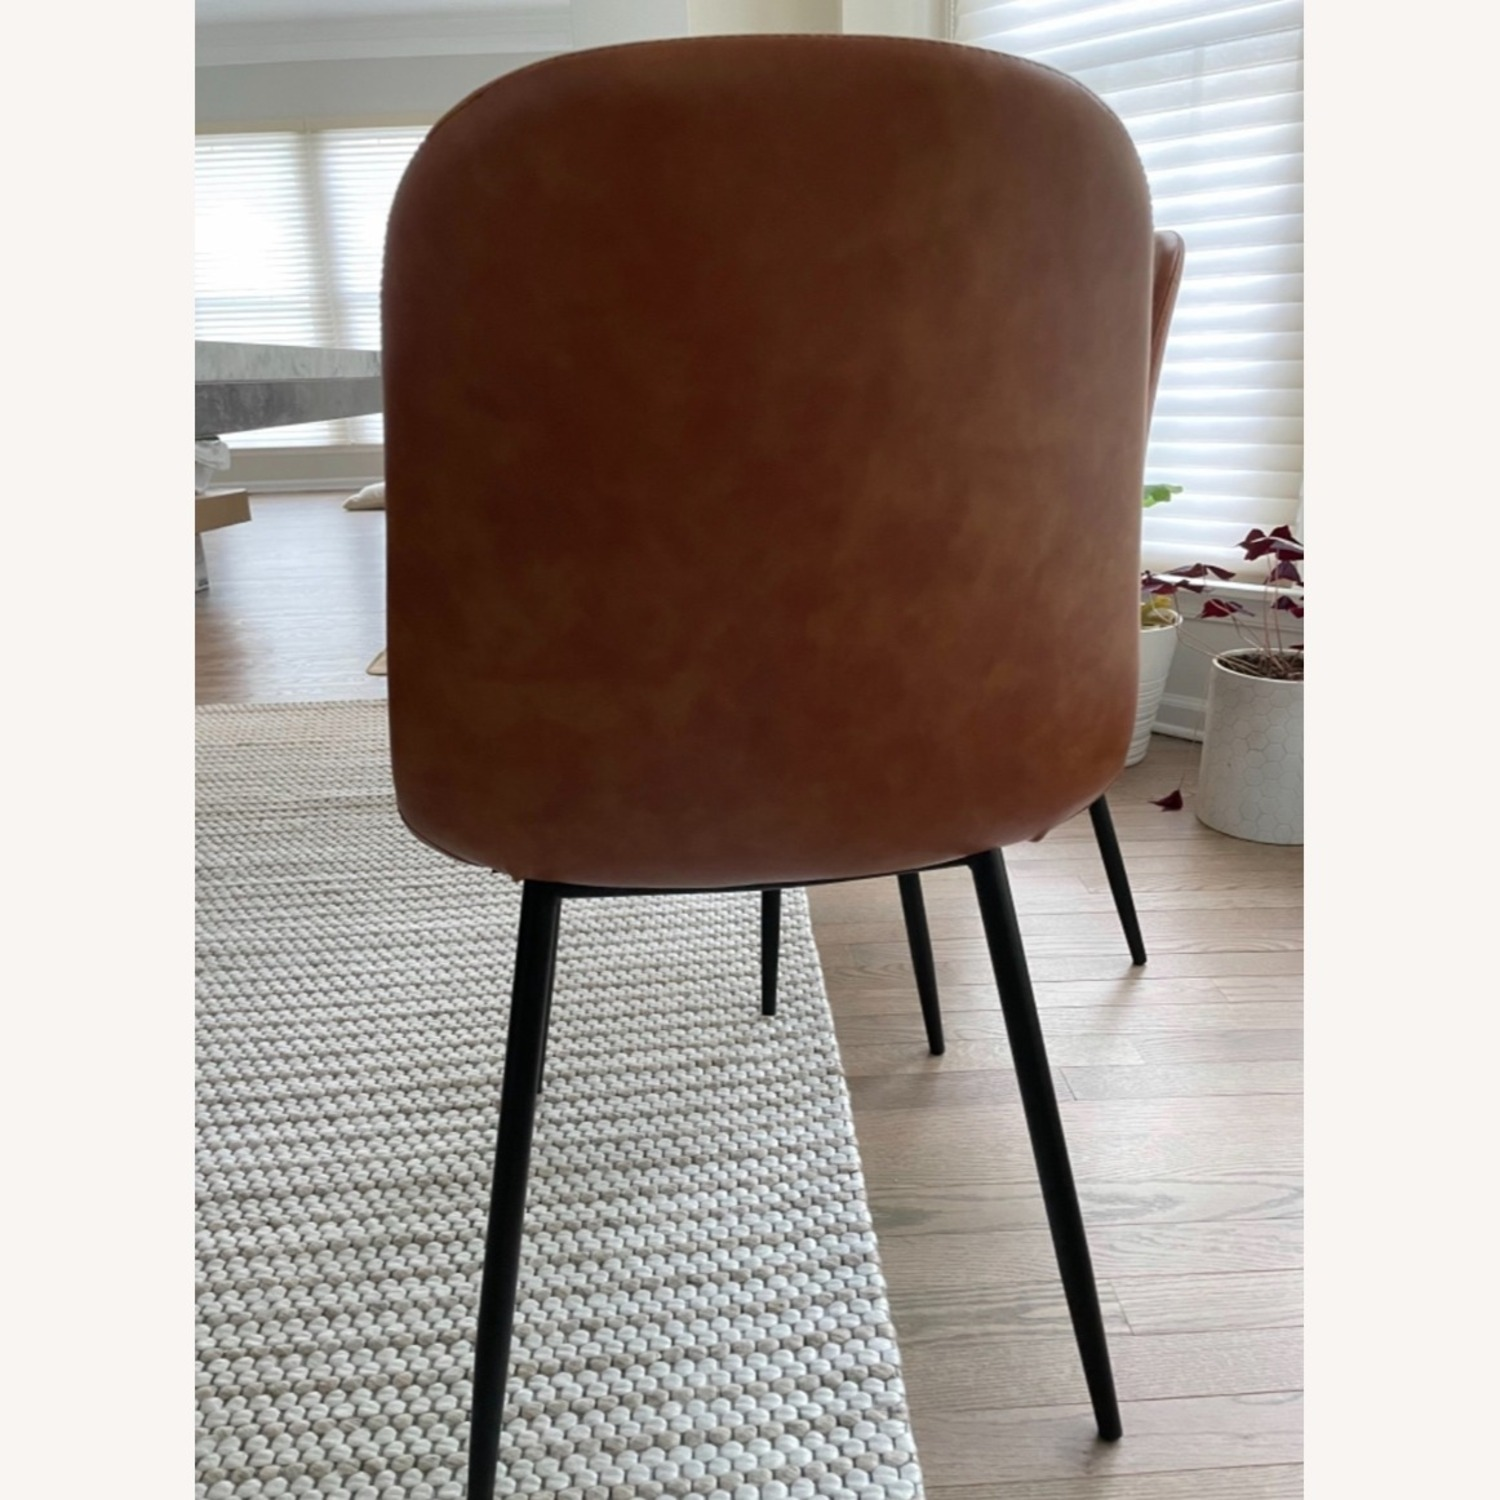 Set of 6 Slope Dining Chairs Faux Leather Brown - image-3